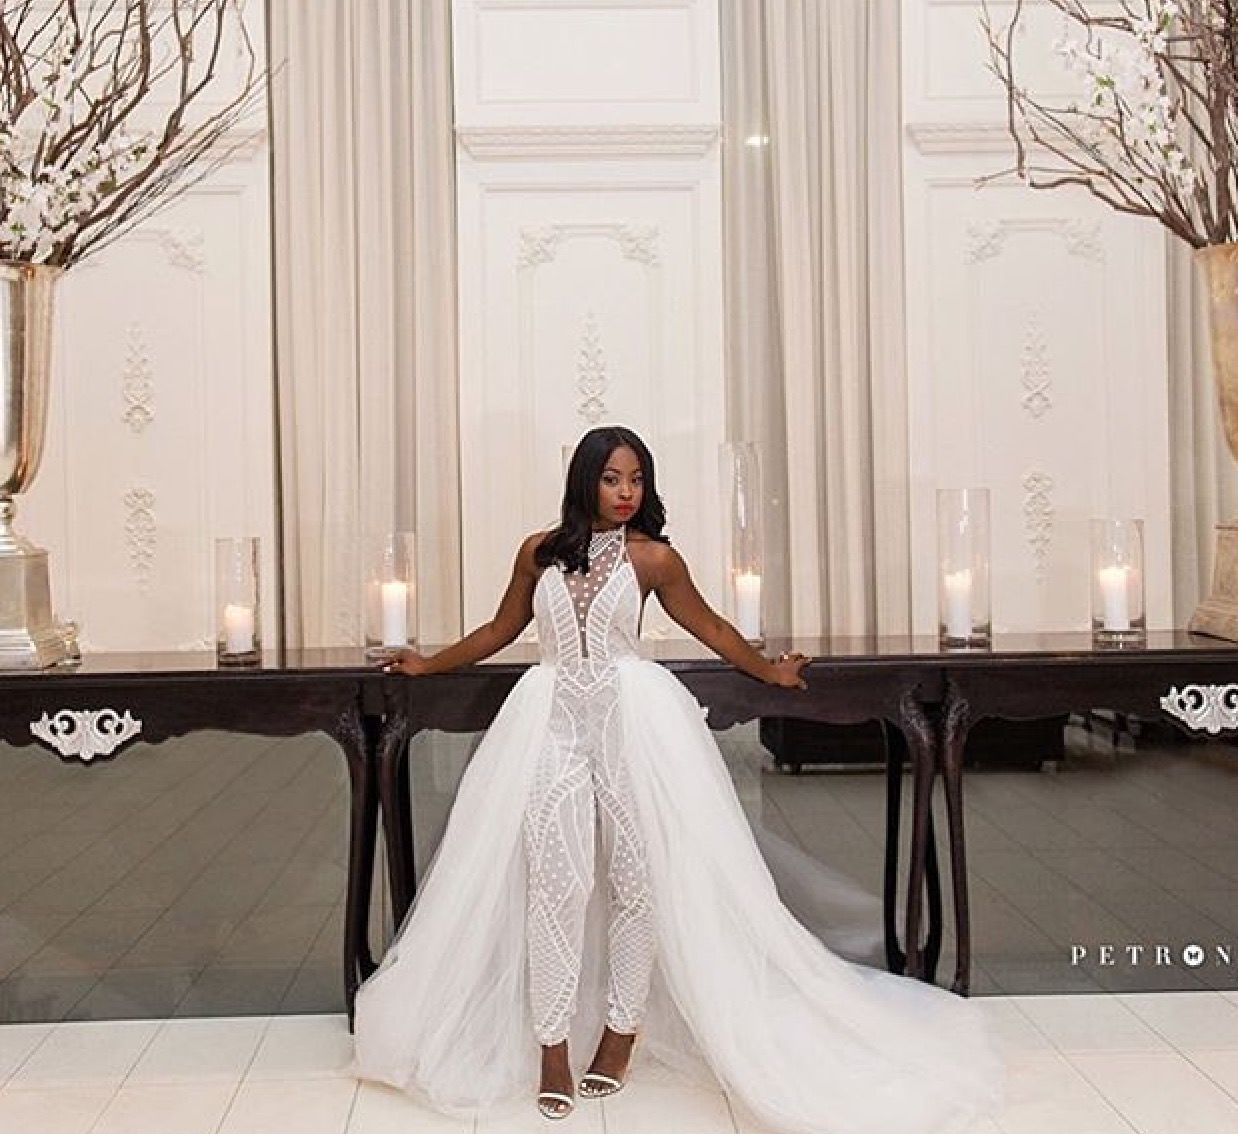 Follow Us Signature Bride On Instagram And Twitter And On Facebook Signature Bride Magazi Bride Reception Dresses Wedding Reception Outfit Wedding Jumpsuit